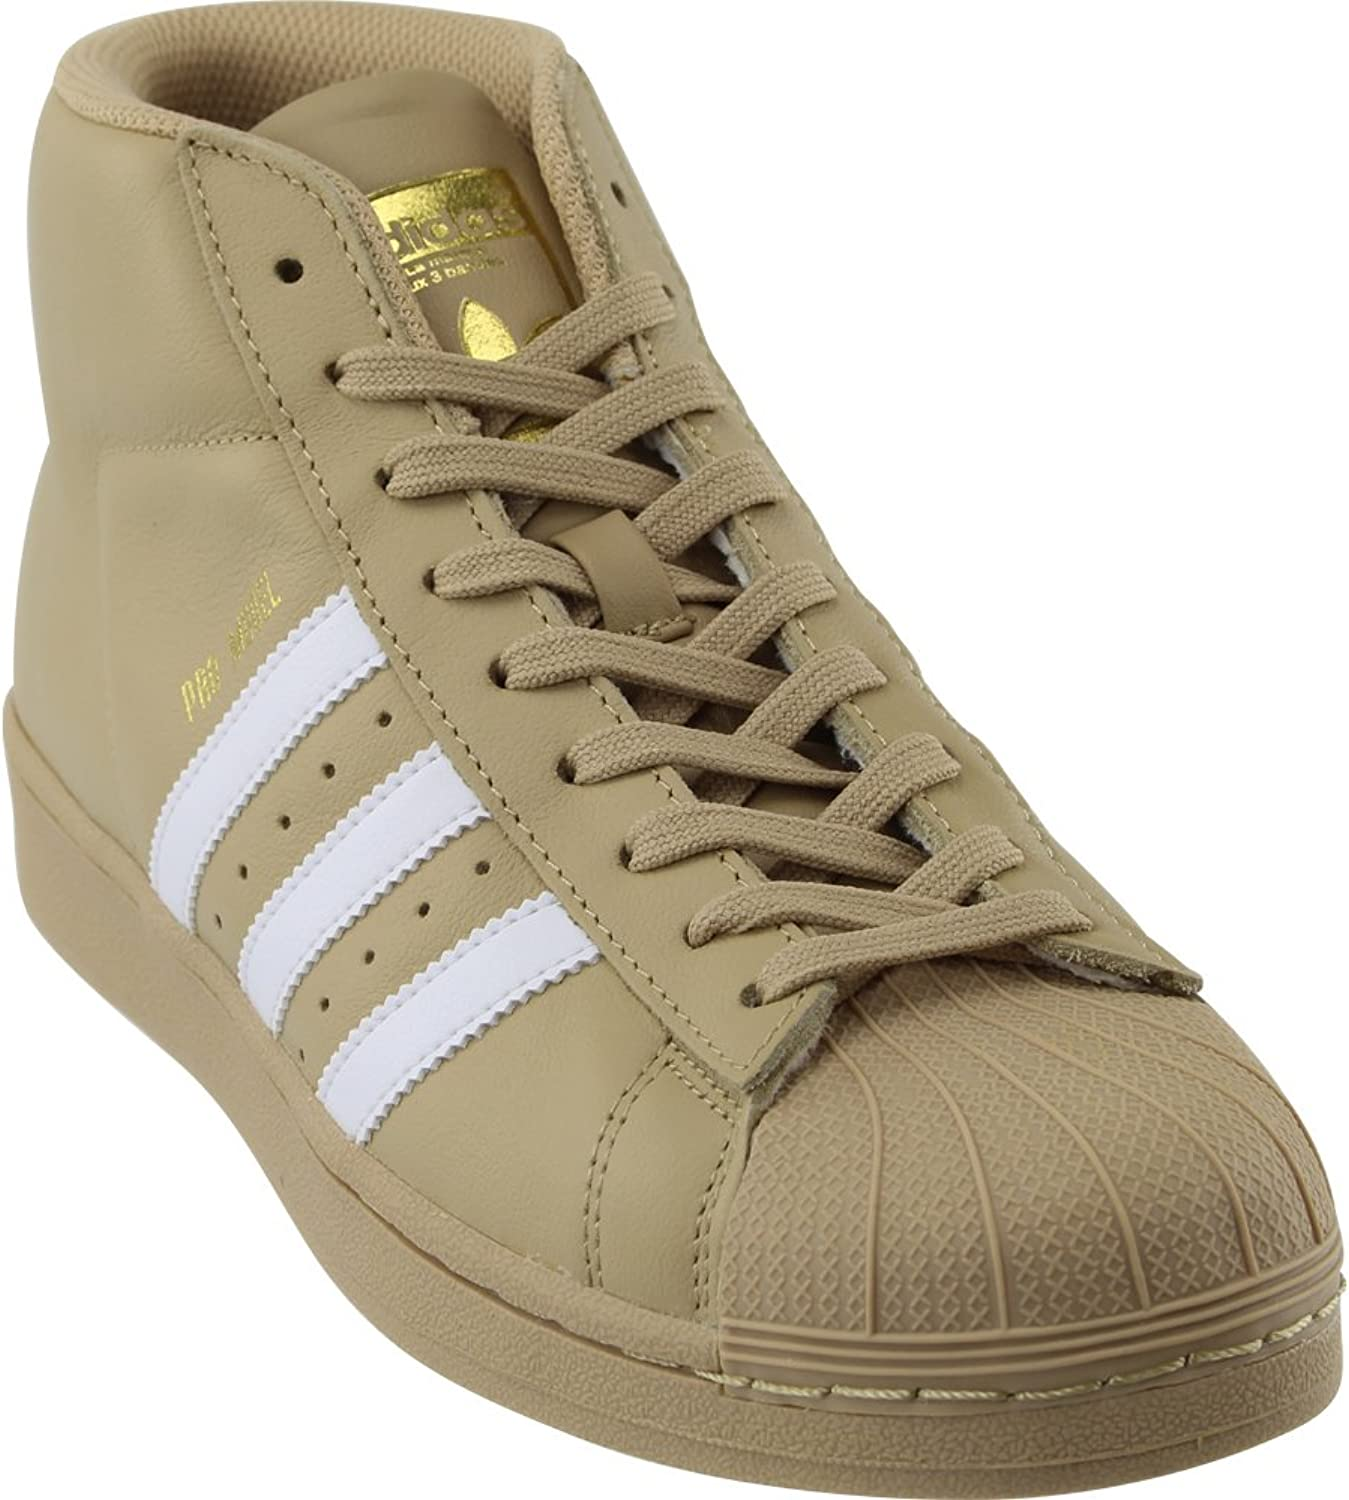 Adidas Pro Model Men's shoes Khaki White Metallic gold cg5072 (9 D(M) US)